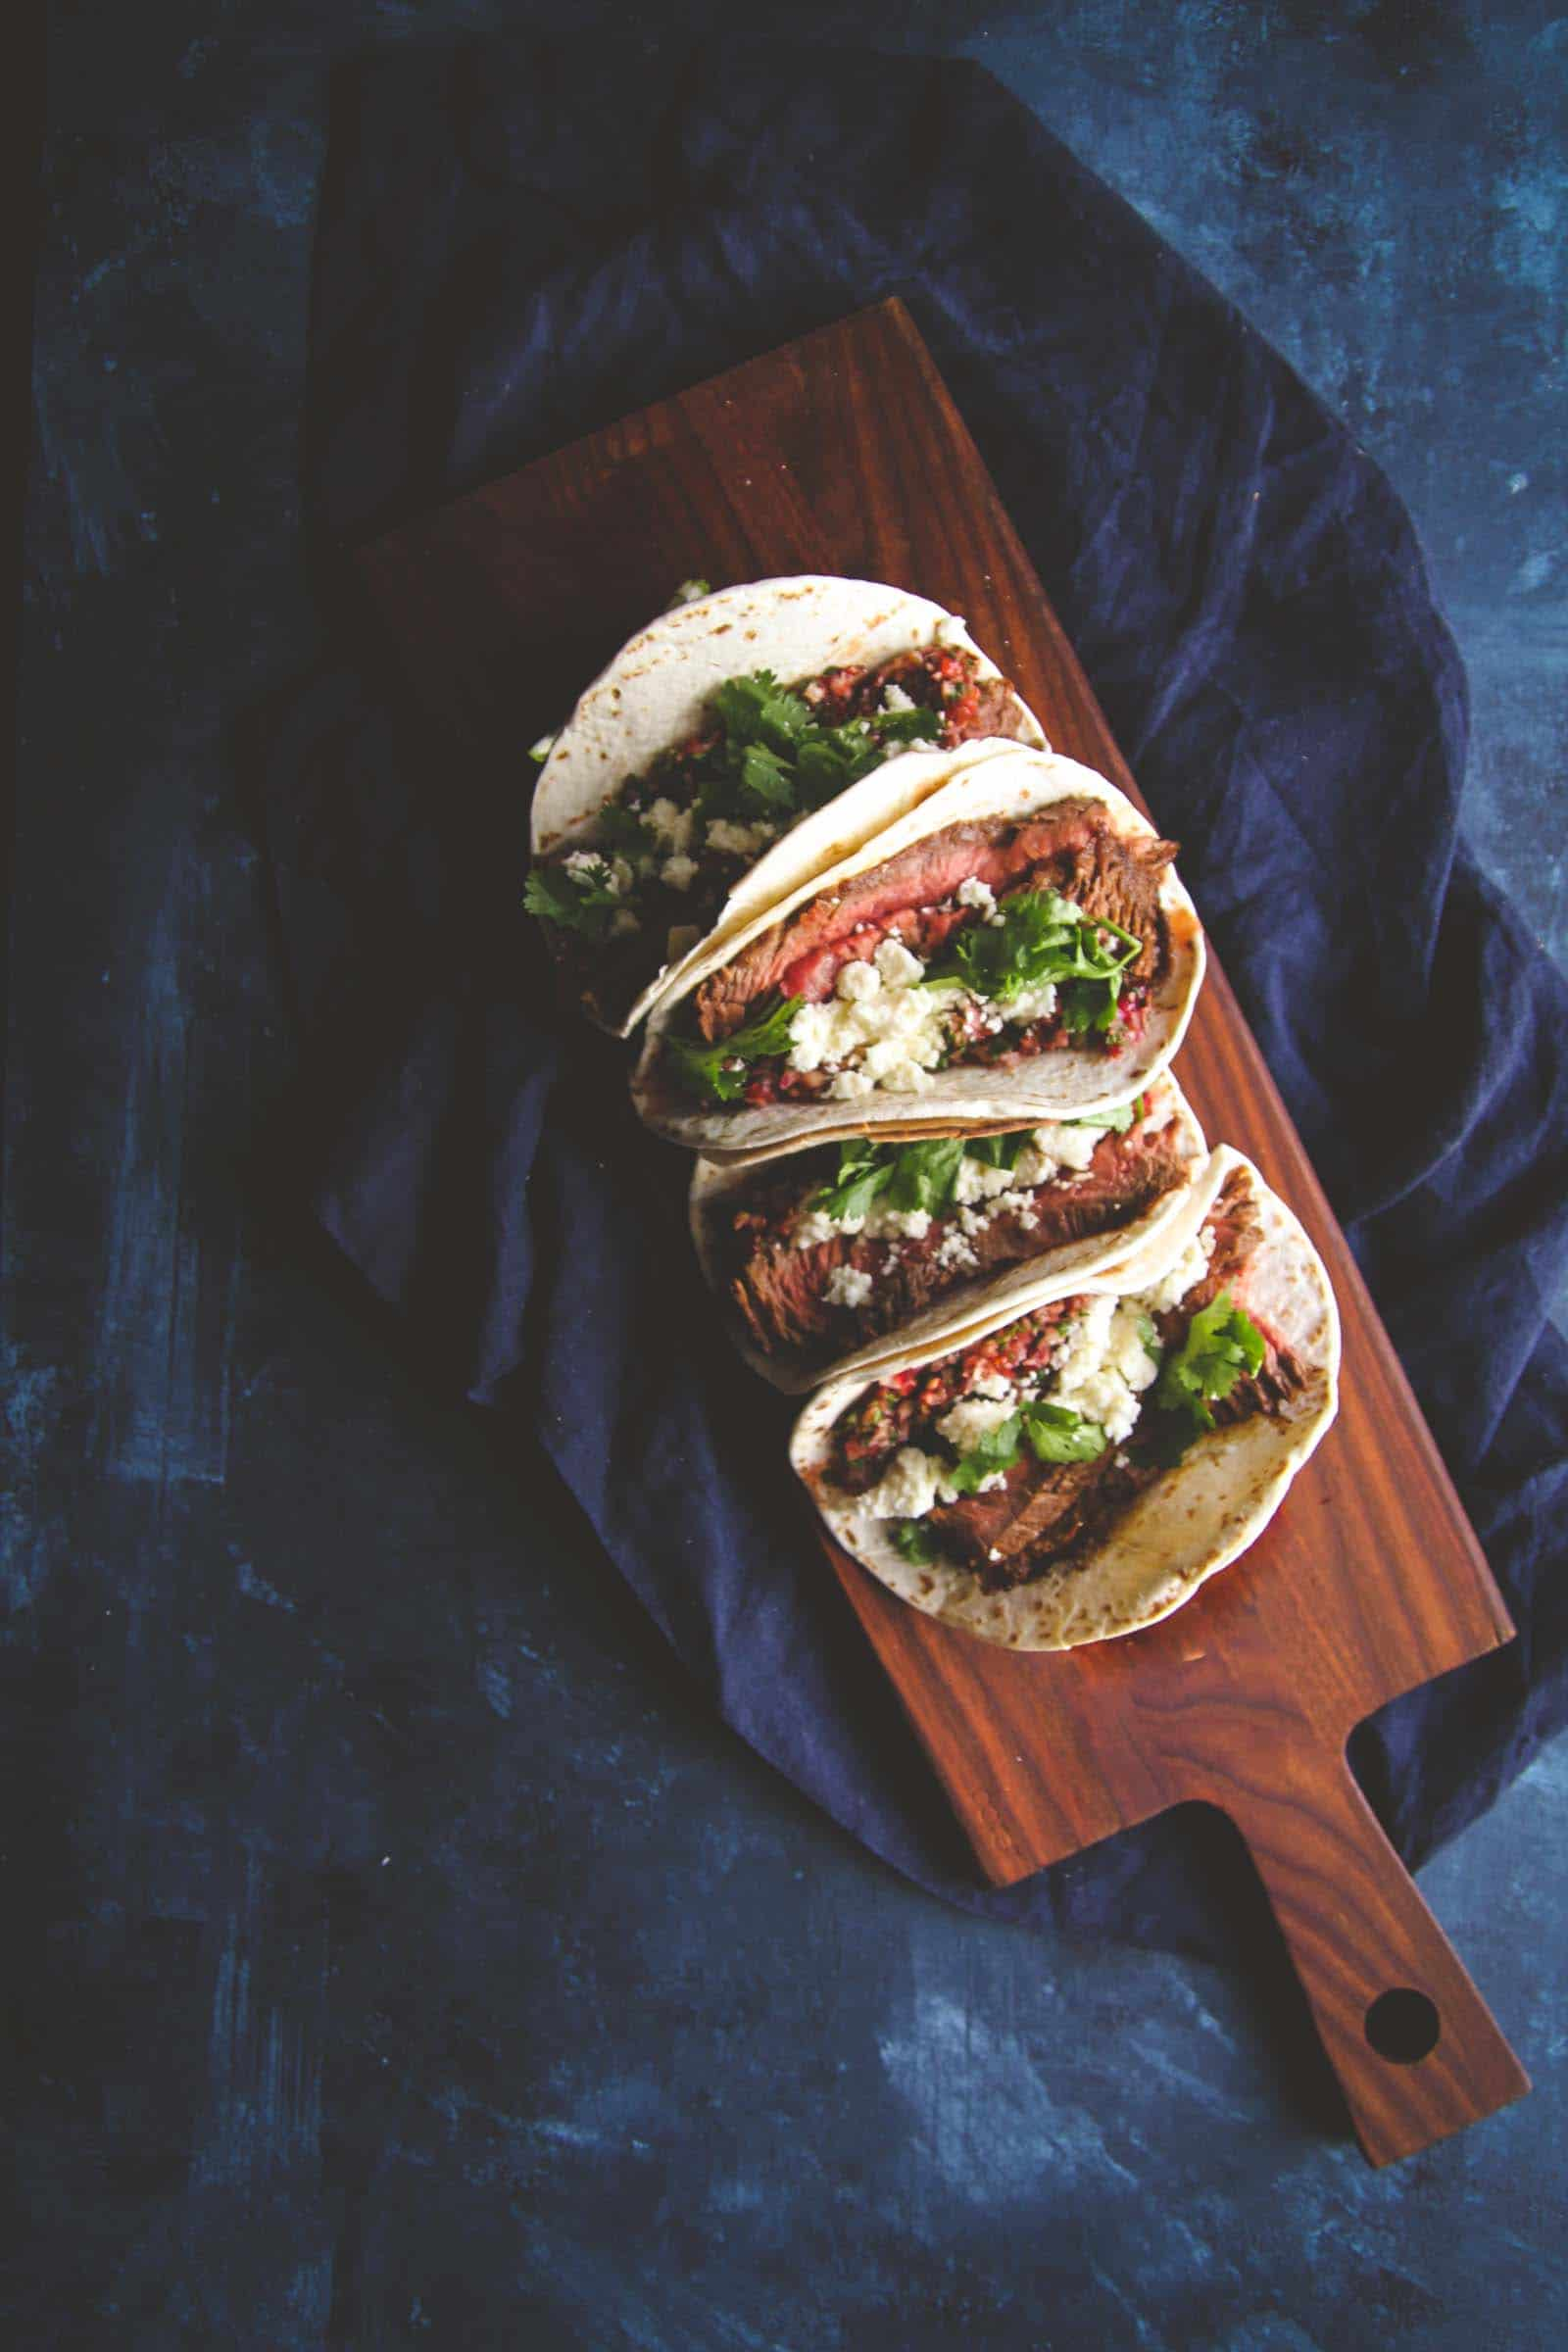 Flank steak tacos with fresh cranberry salsa recipe. Steak tacos for taco Tuesday from @sweetphi